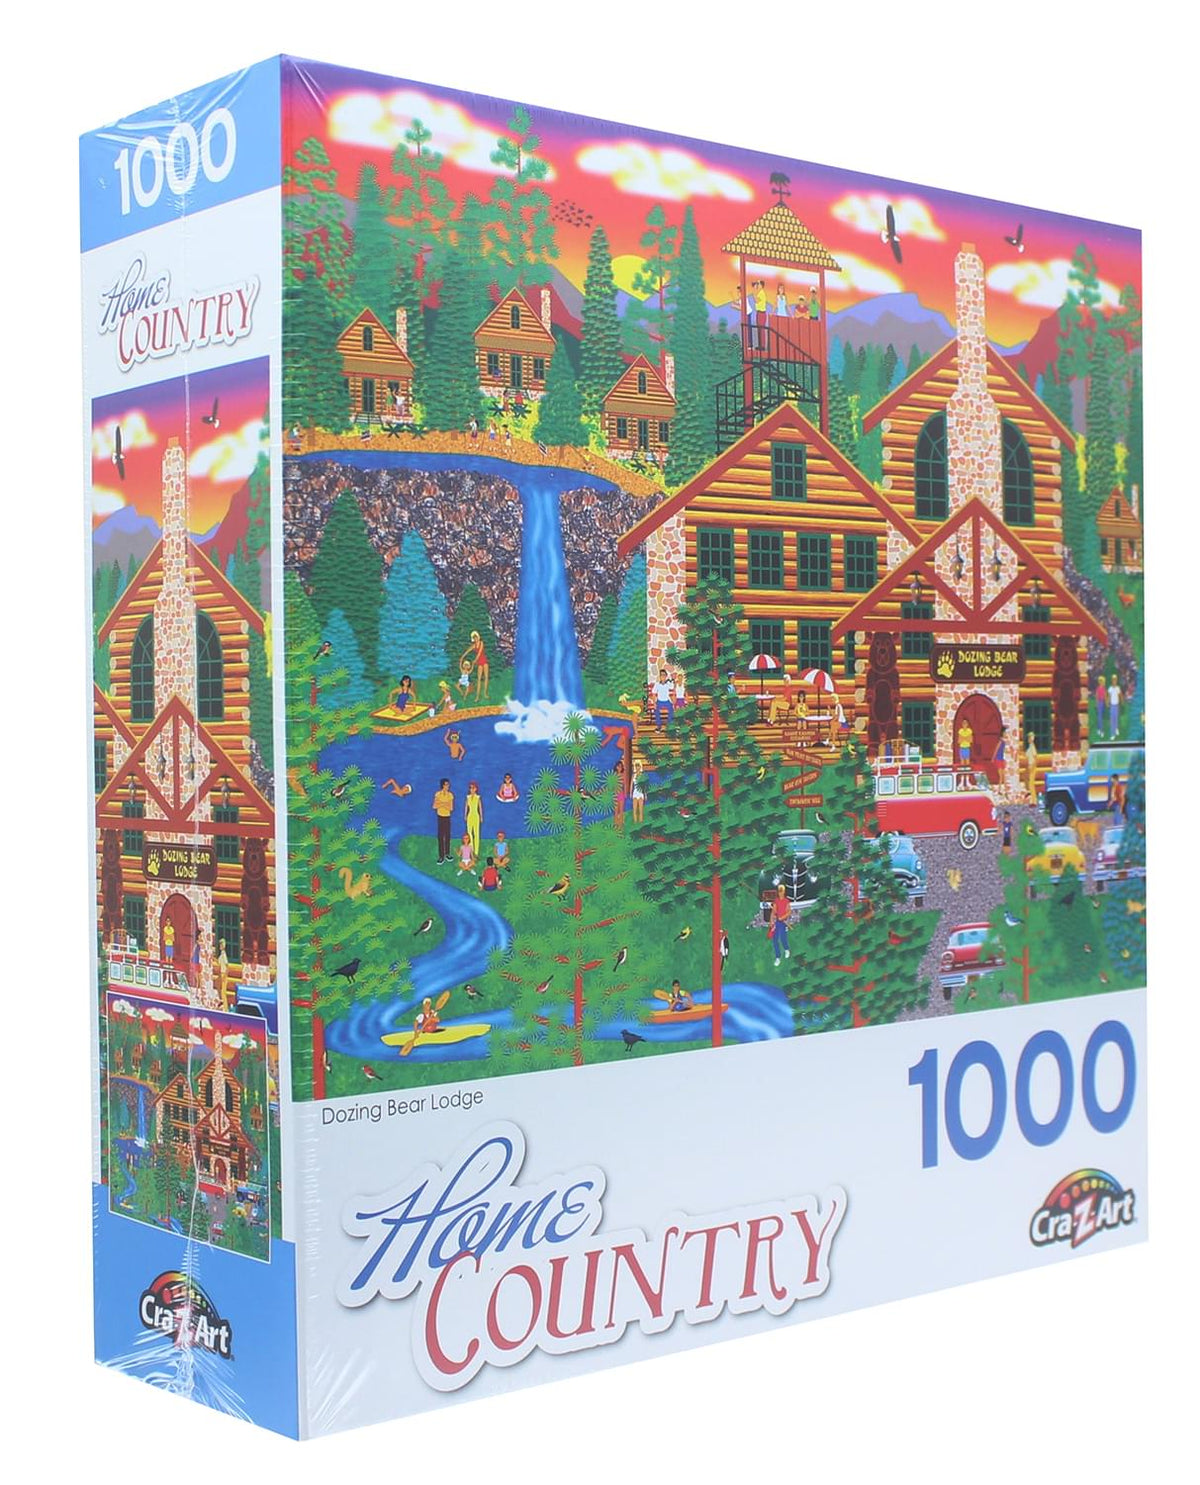 Dozing Bear Lodge 1000 Piece Jigsaw Puzzle